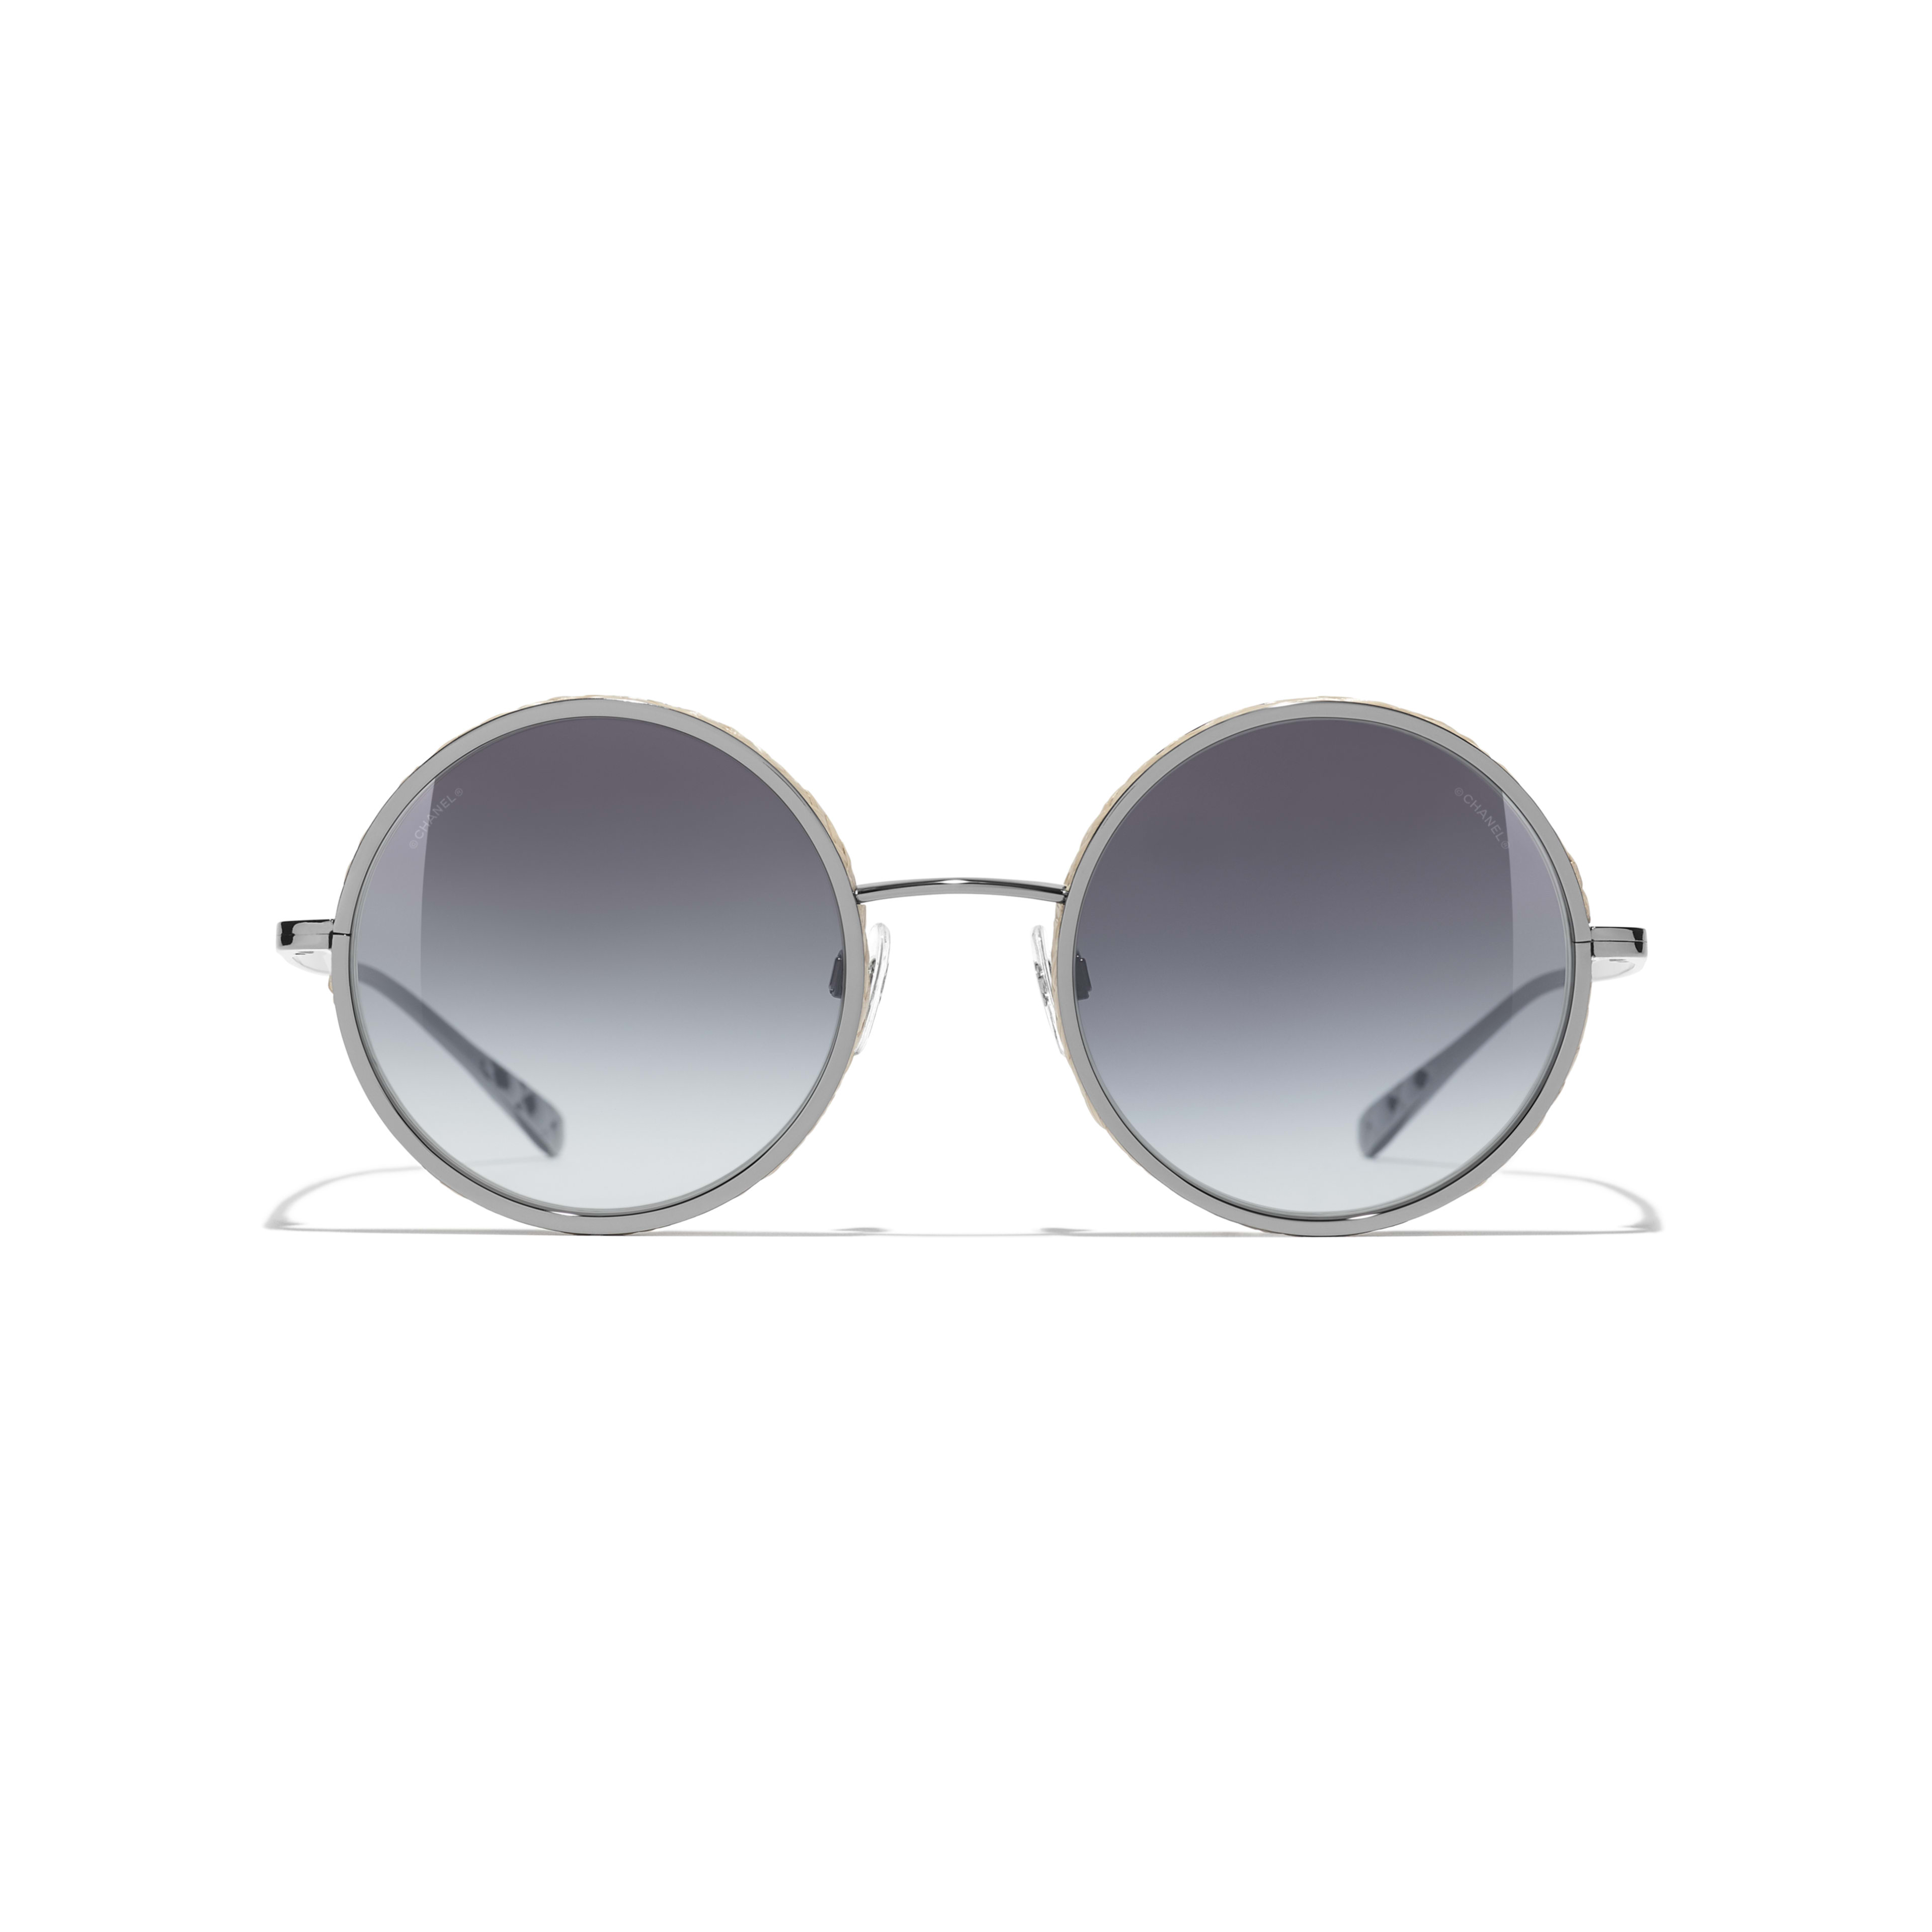 f1bd336426 Round Sunglasses - Dark Silver - Metal   Rope - Alternative view - see full  sized ...